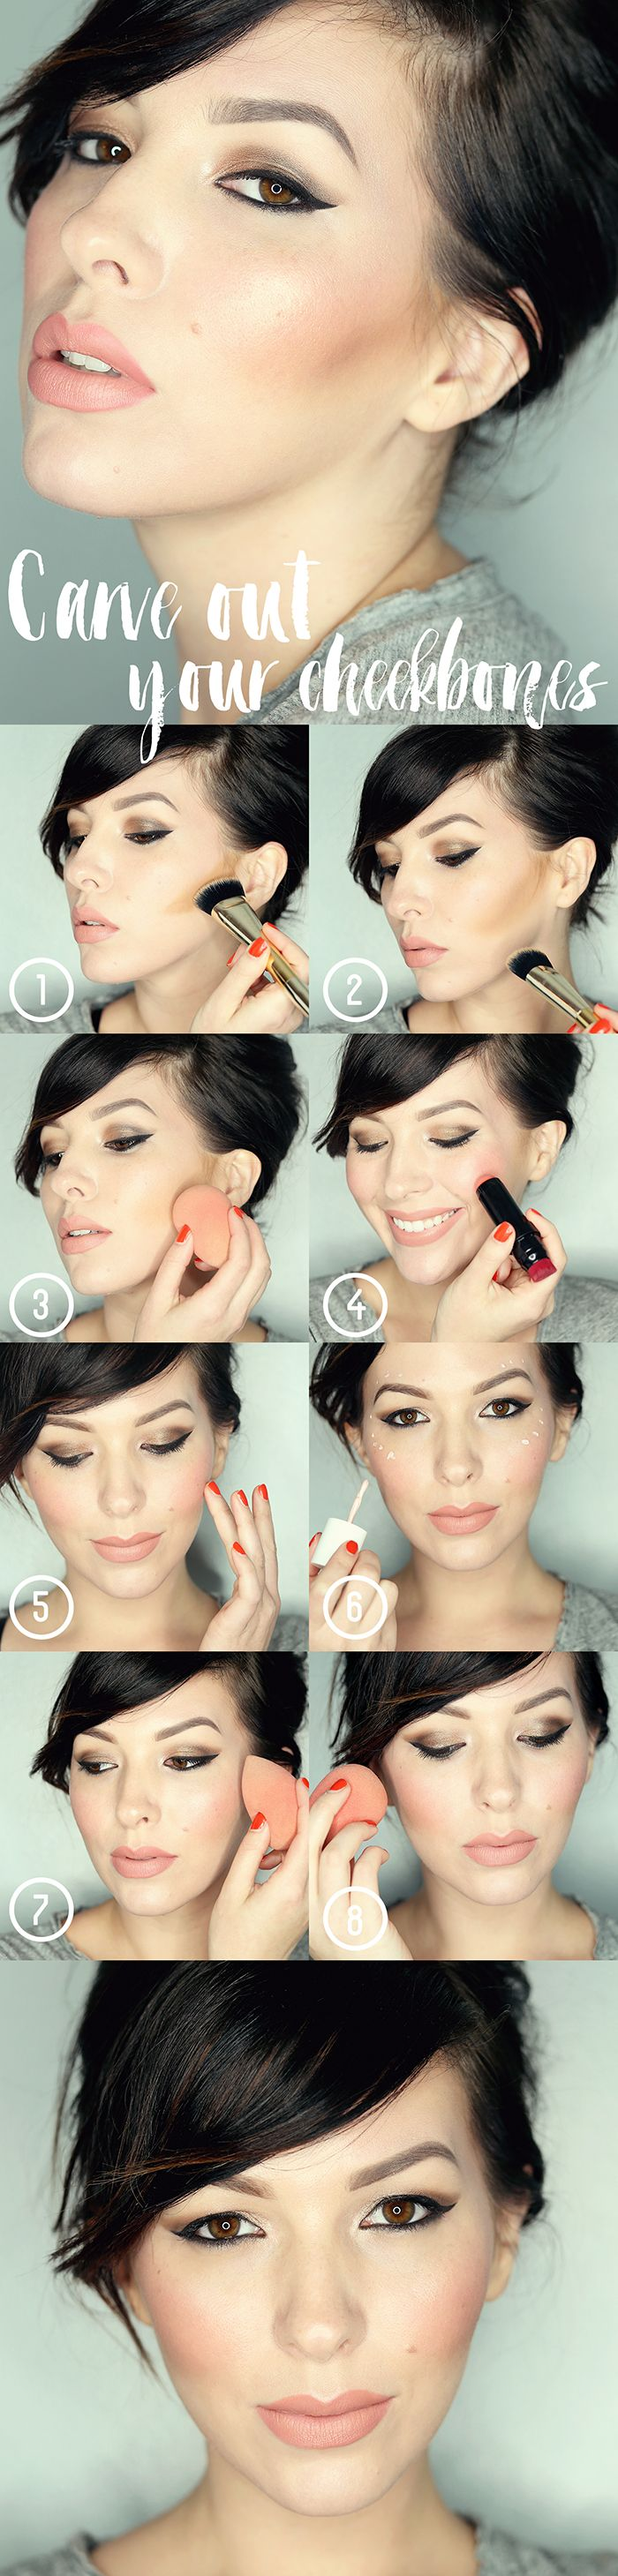 Makeup Monday Tutorial: How To Carve Out Your Cheekbones / contour, highlight and blush                                                                                                                                                                                 More